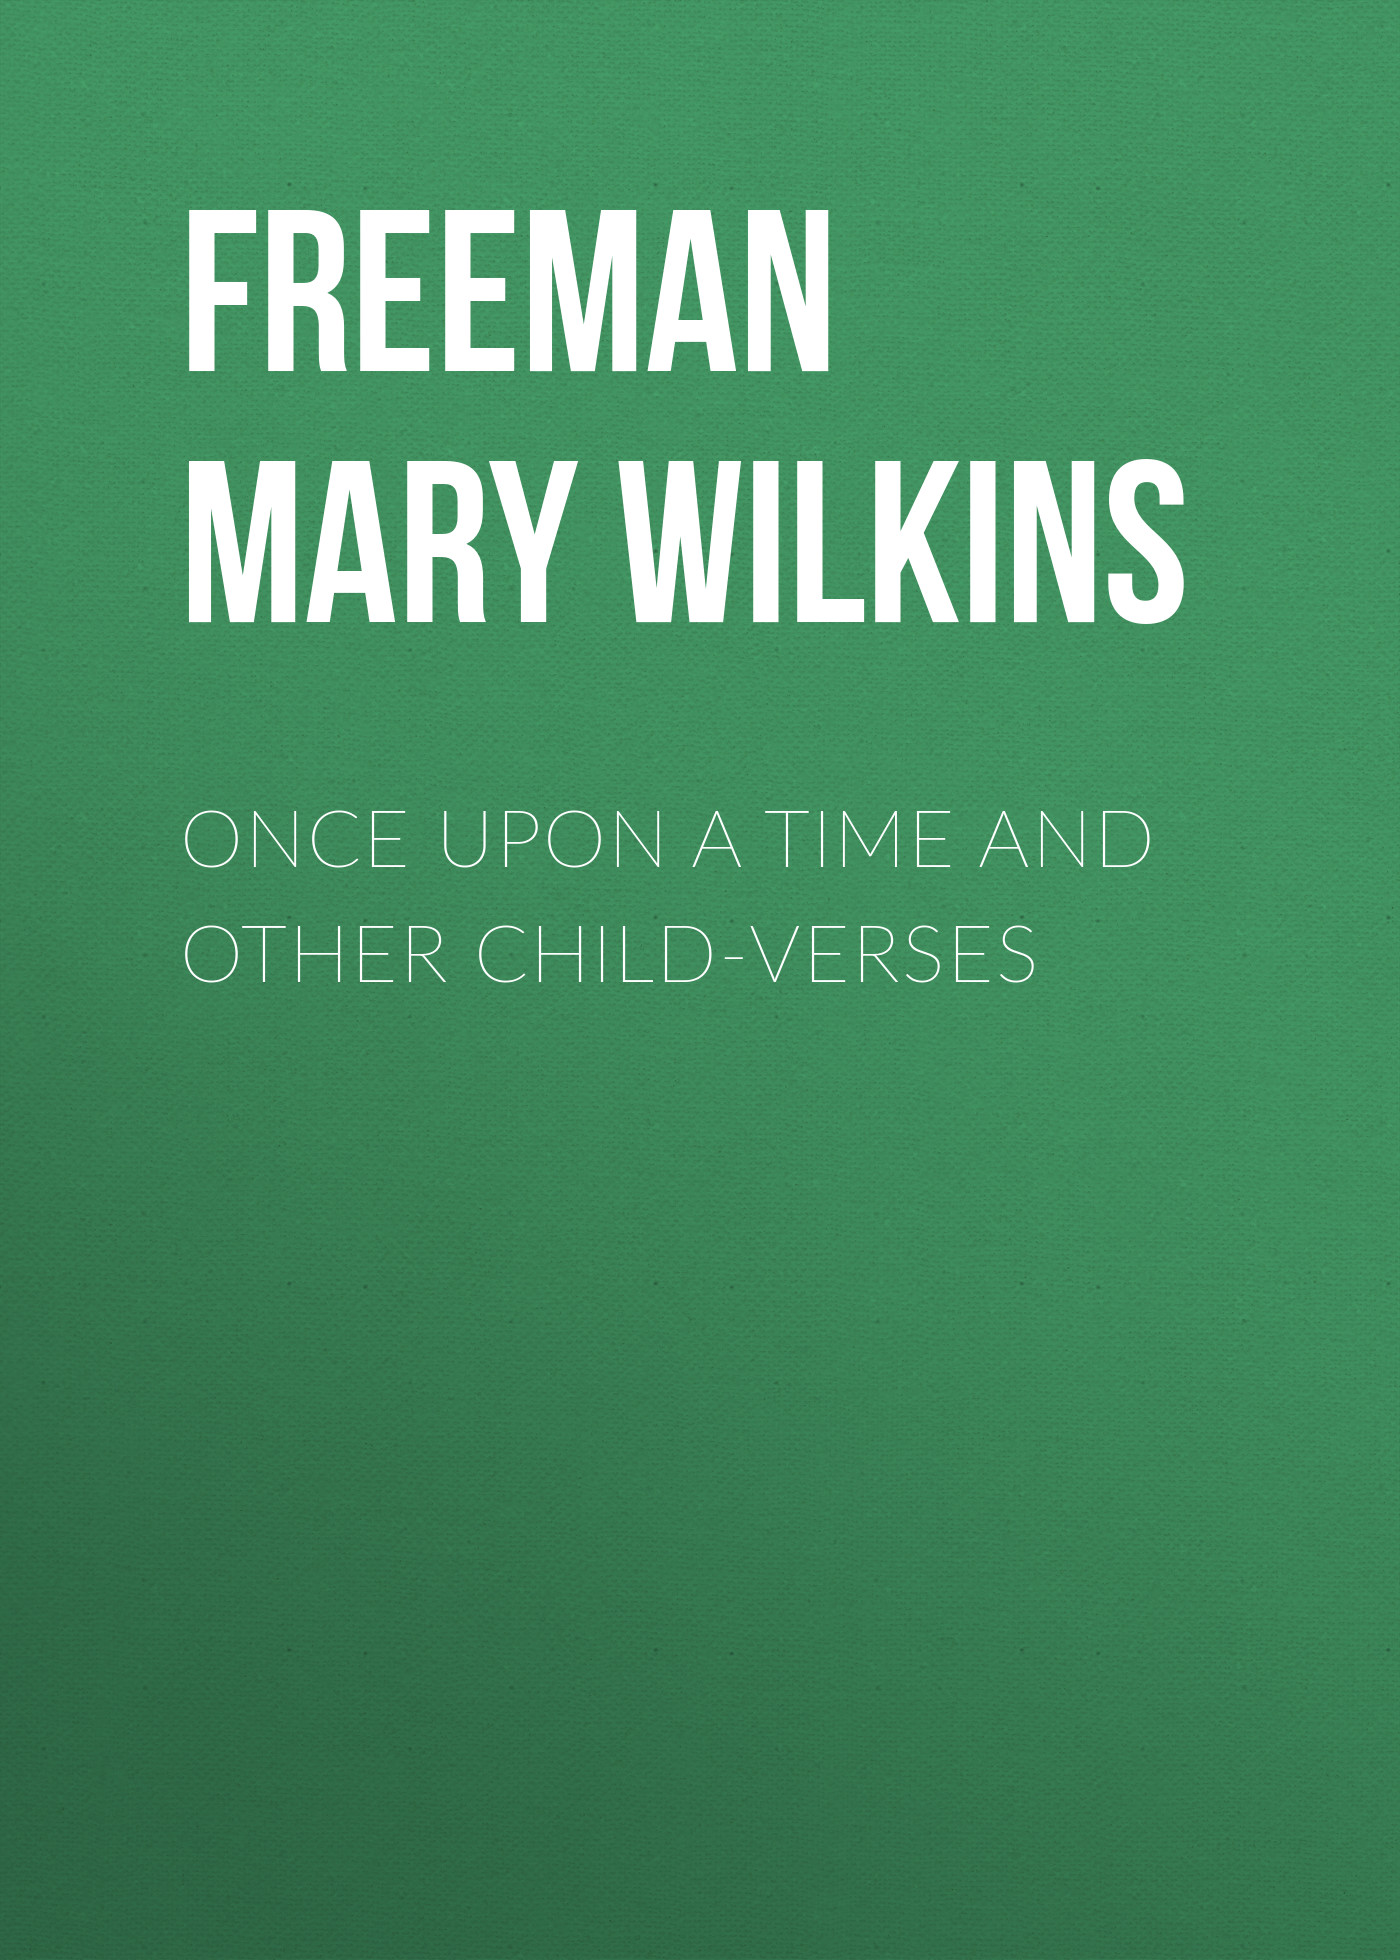 Freeman Mary Eleanor Wilkins Once Upon a Time and Other Child-Verses mary e wilkins freeman florence morse kingsley an alabaster box by mary e wilkins freeman fiction